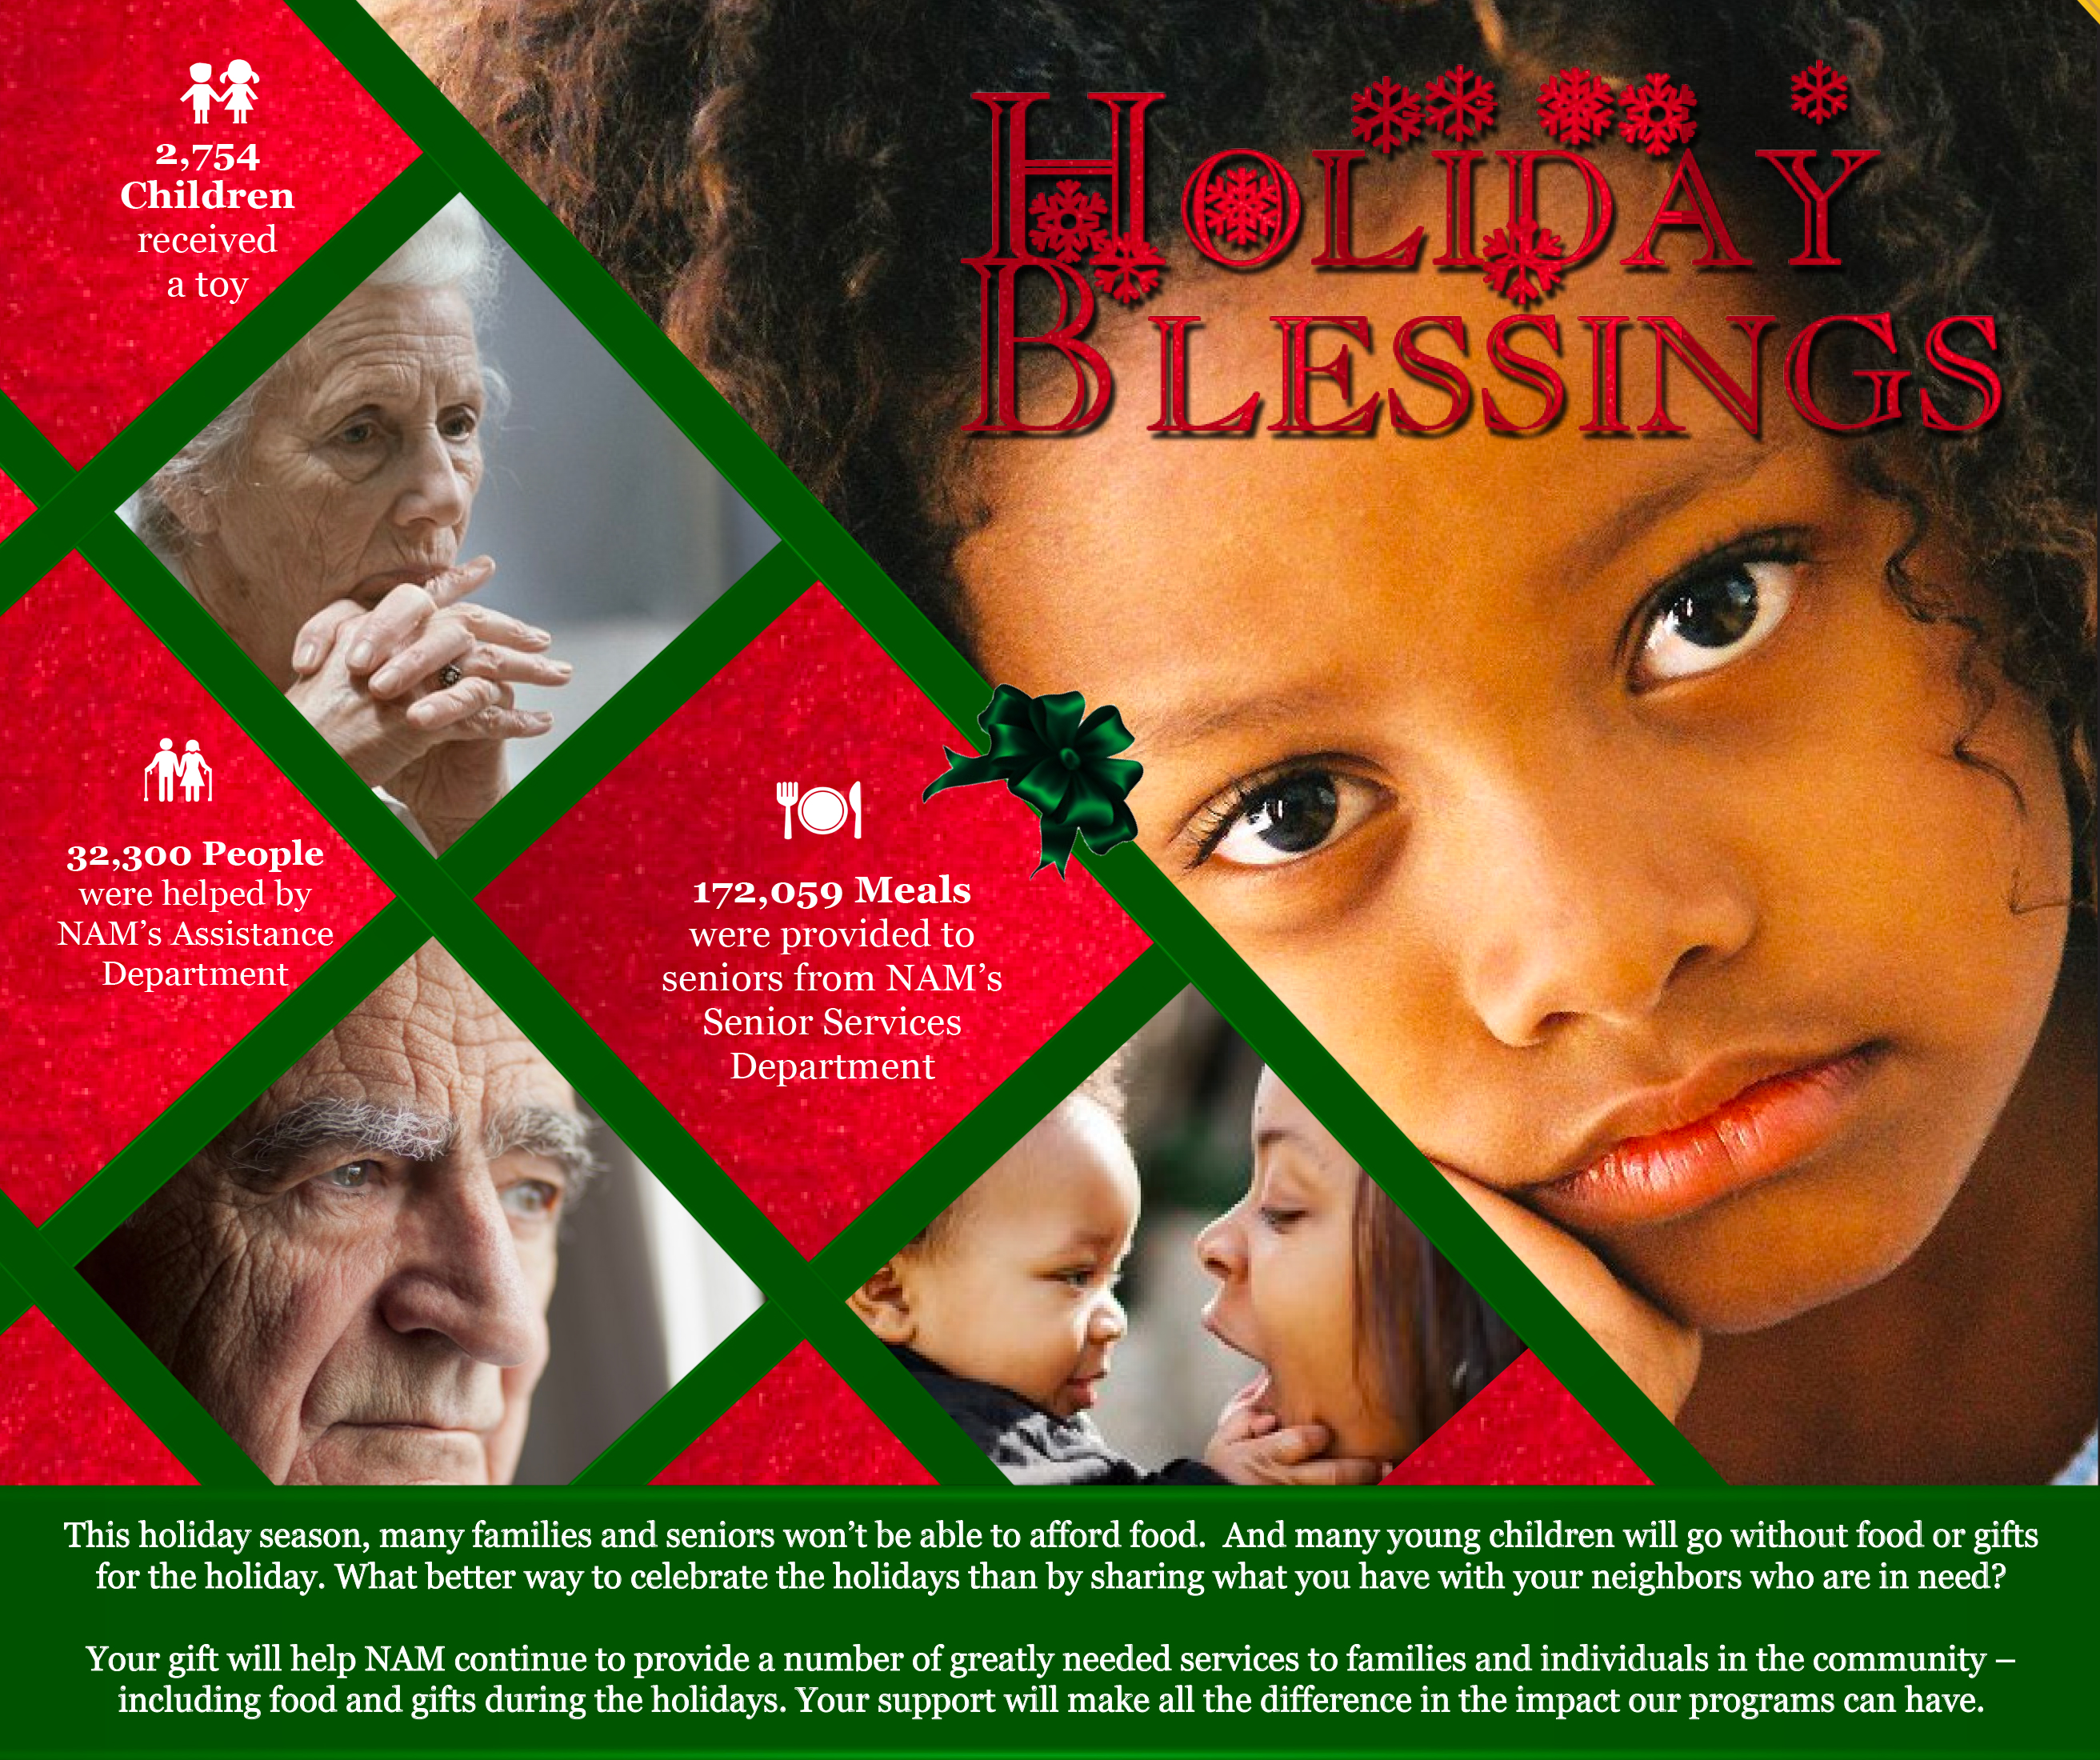 2018_holiday_blessings_web.jpg